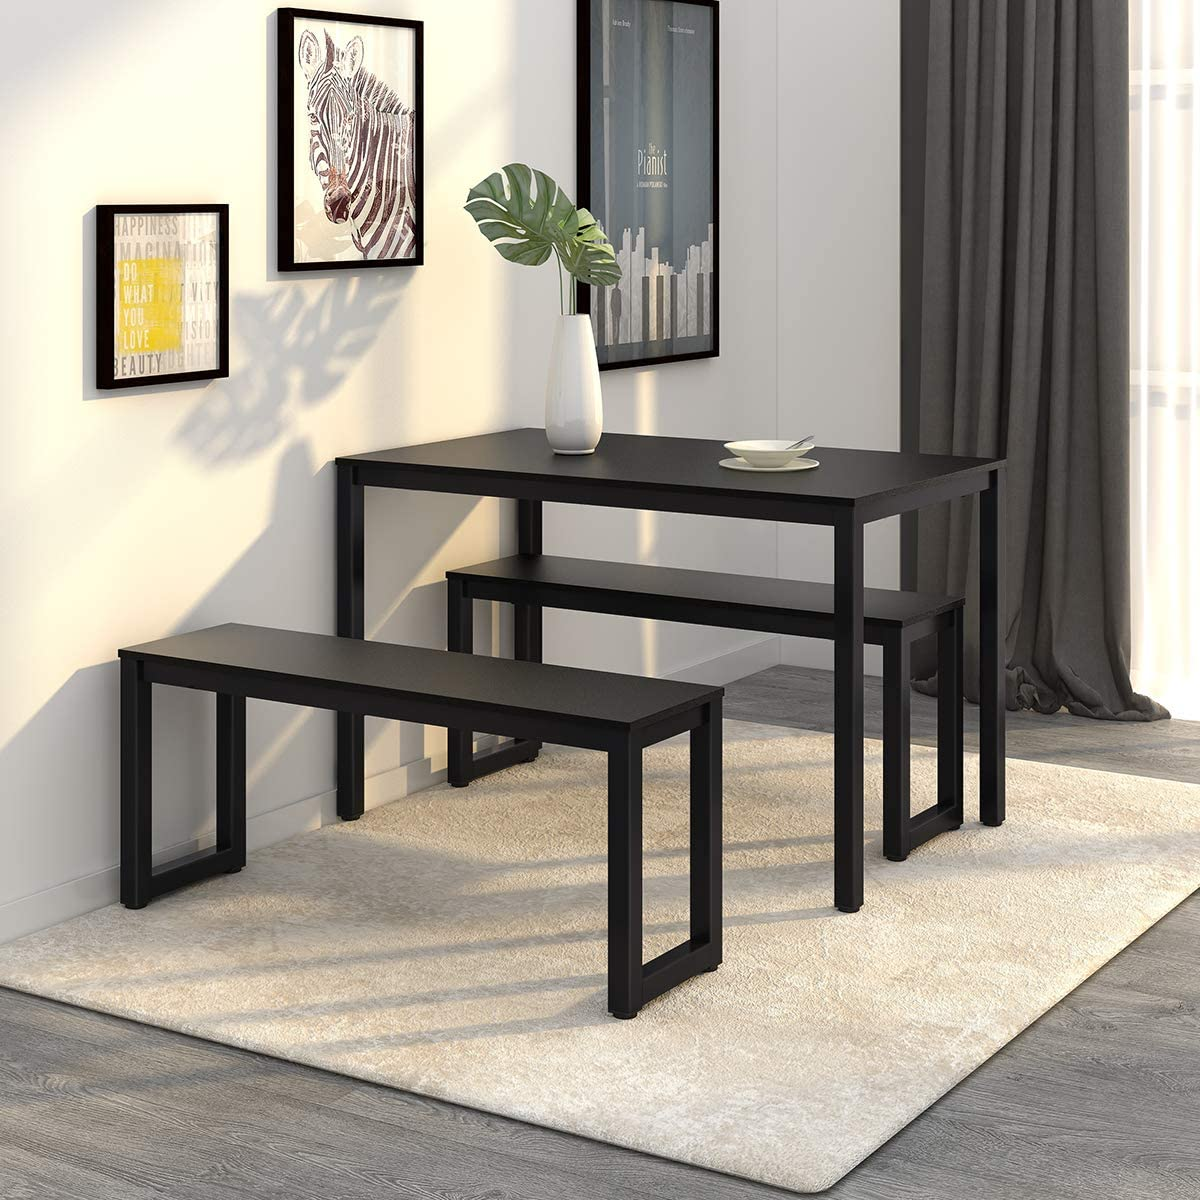 WLIVE Dining Table